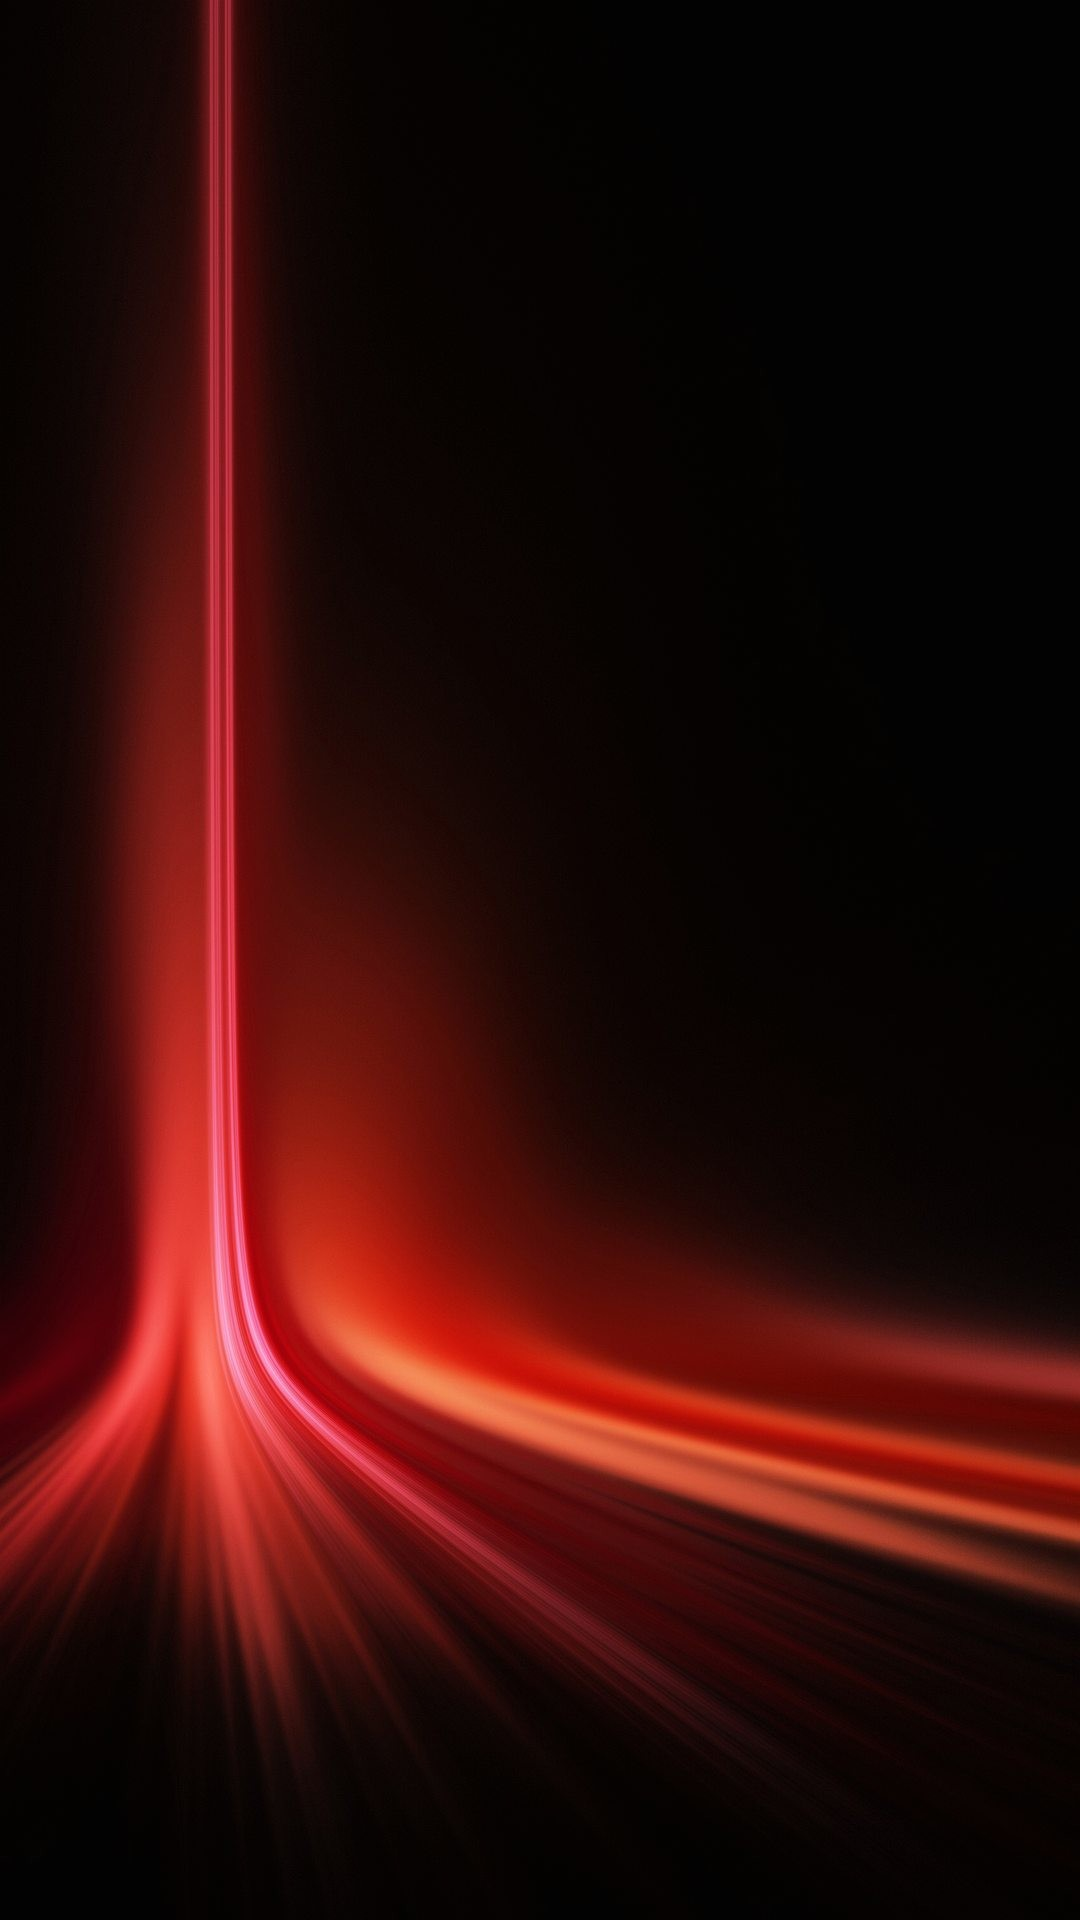 Image for Smartphone HD Background